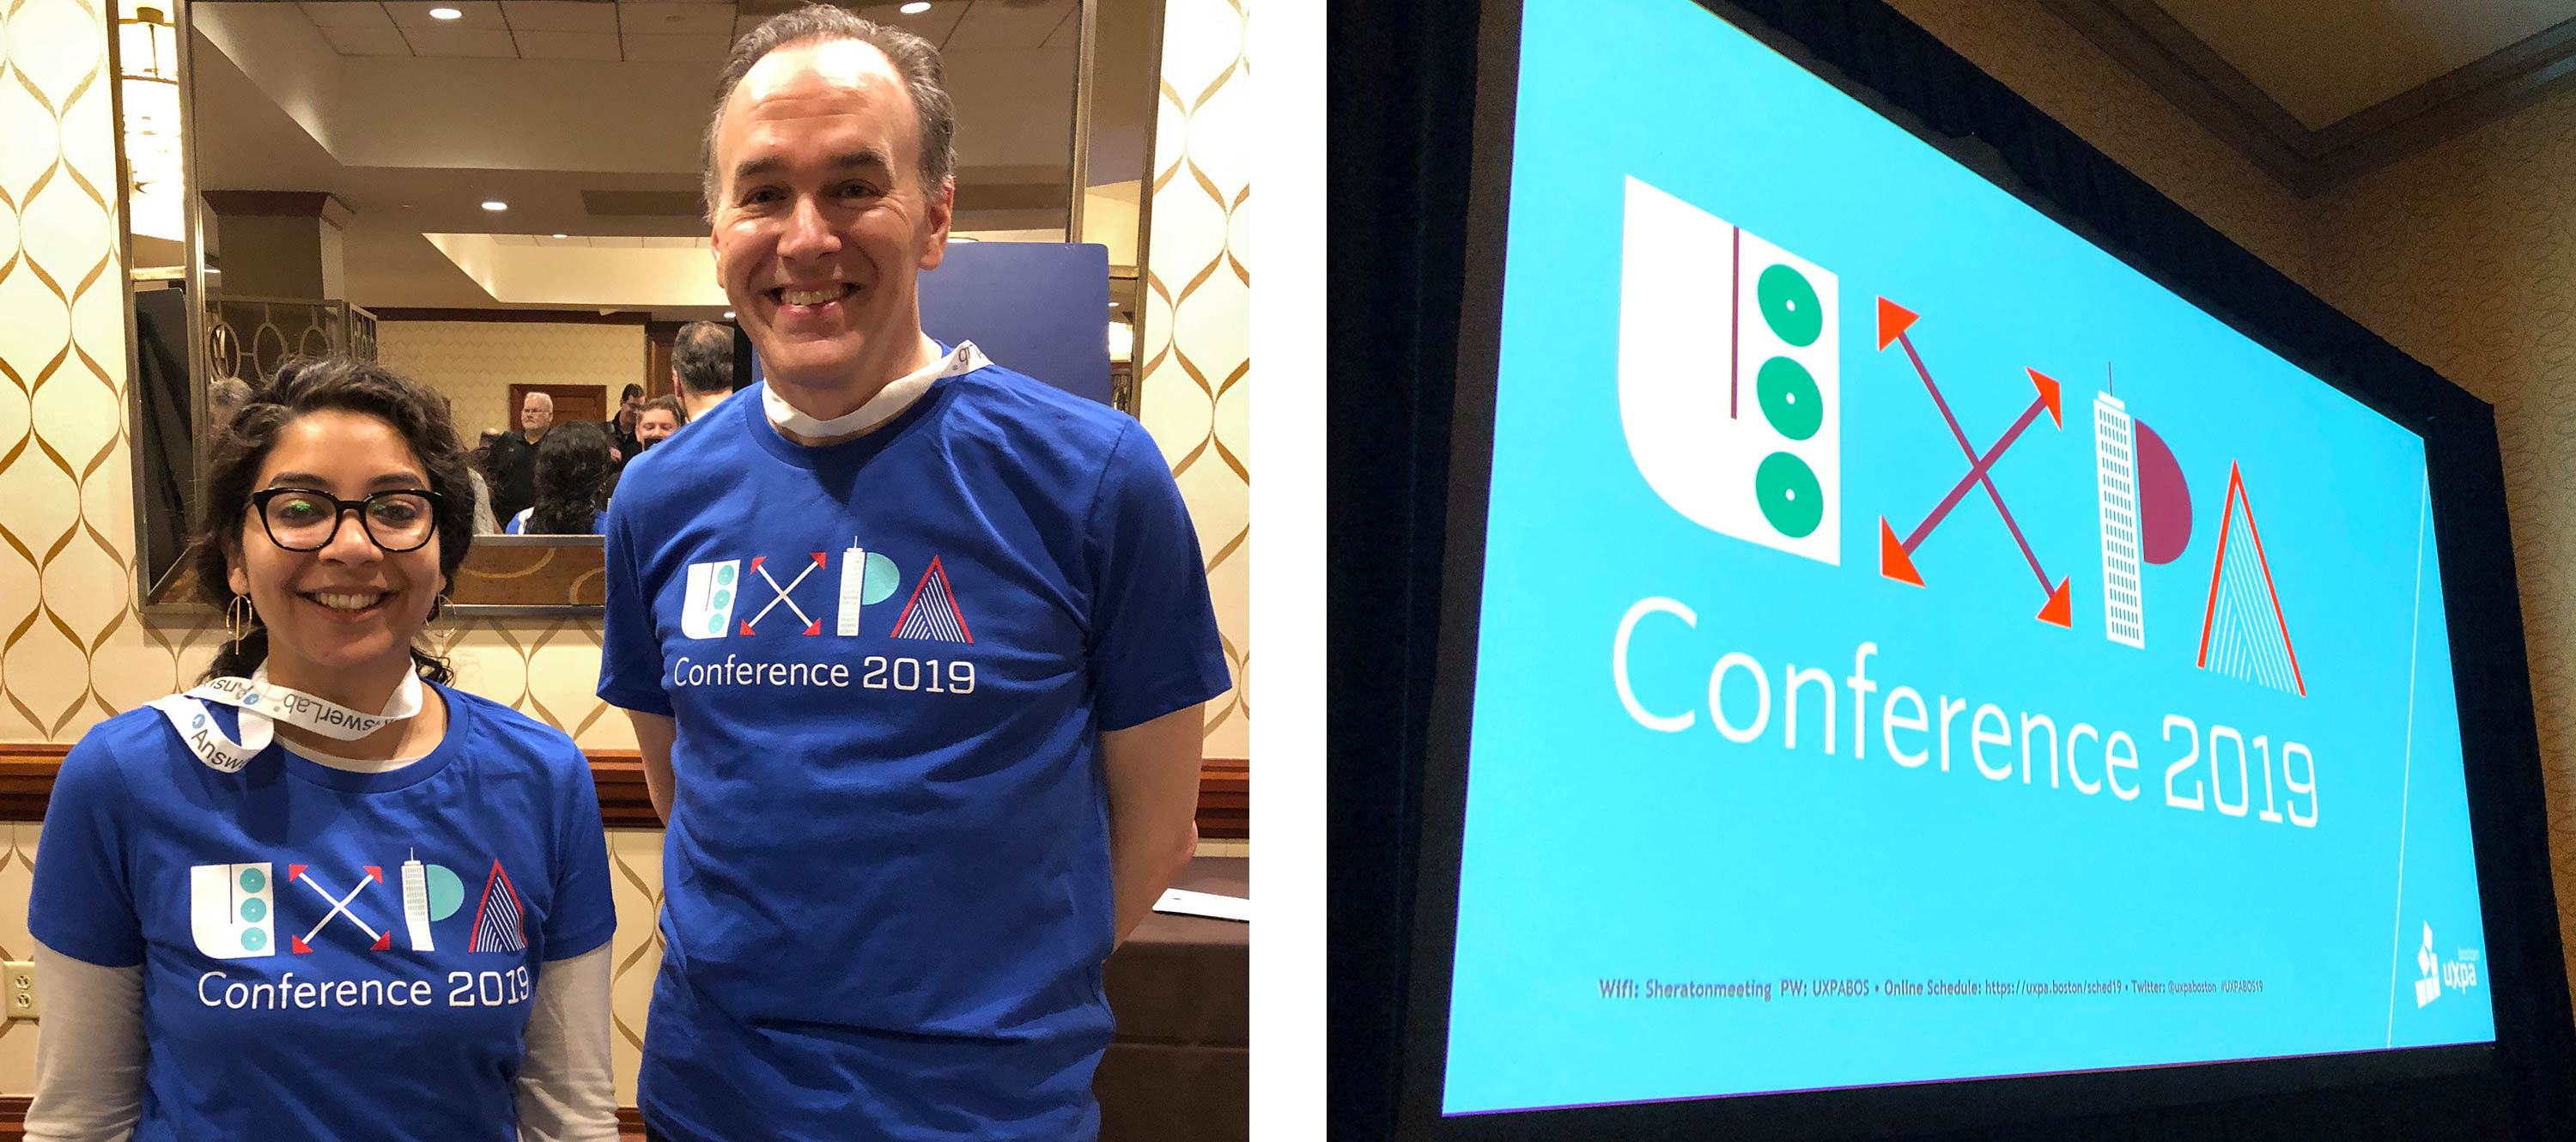 Two people wearing UXPA conference t-shirts at the UXPA Boston Annual conference. A large screen displays the UXPA Conference 2019 logo.